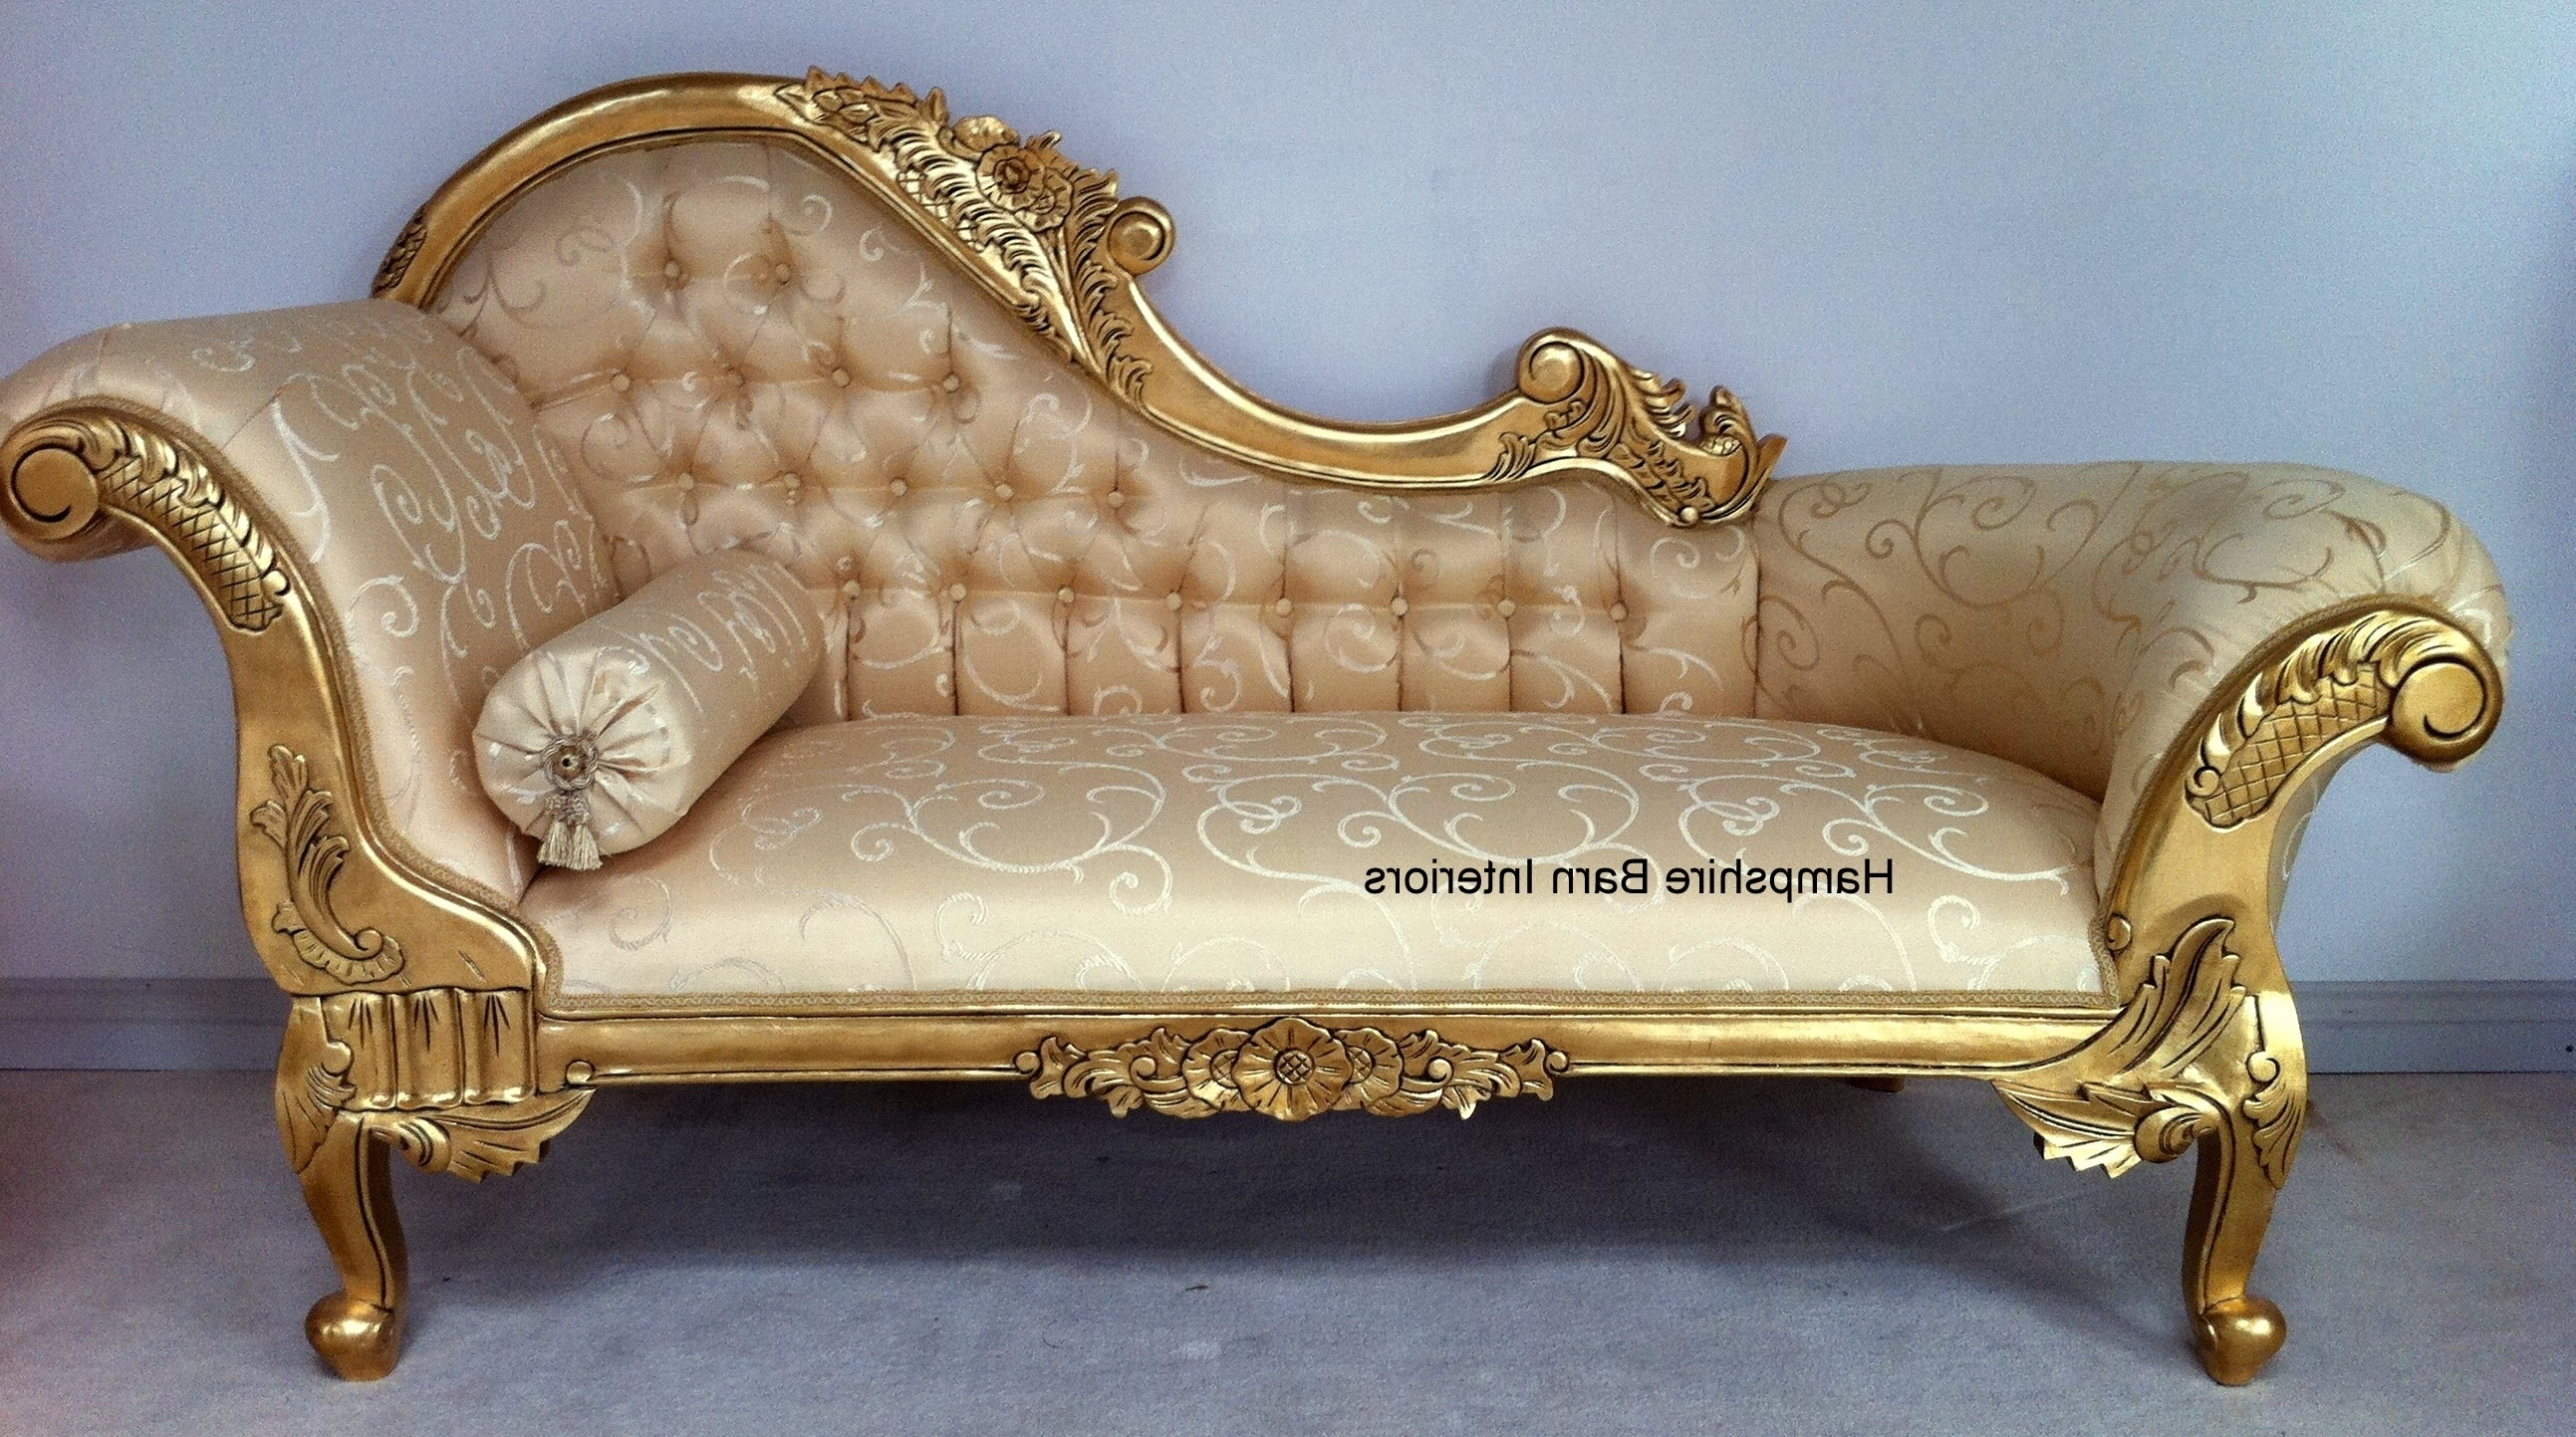 Preferred Cream And Gold Colours For Chaise Lounge : 15 Breathtaking Cream Regarding Cream Chaise Lounges (View 8 of 15)